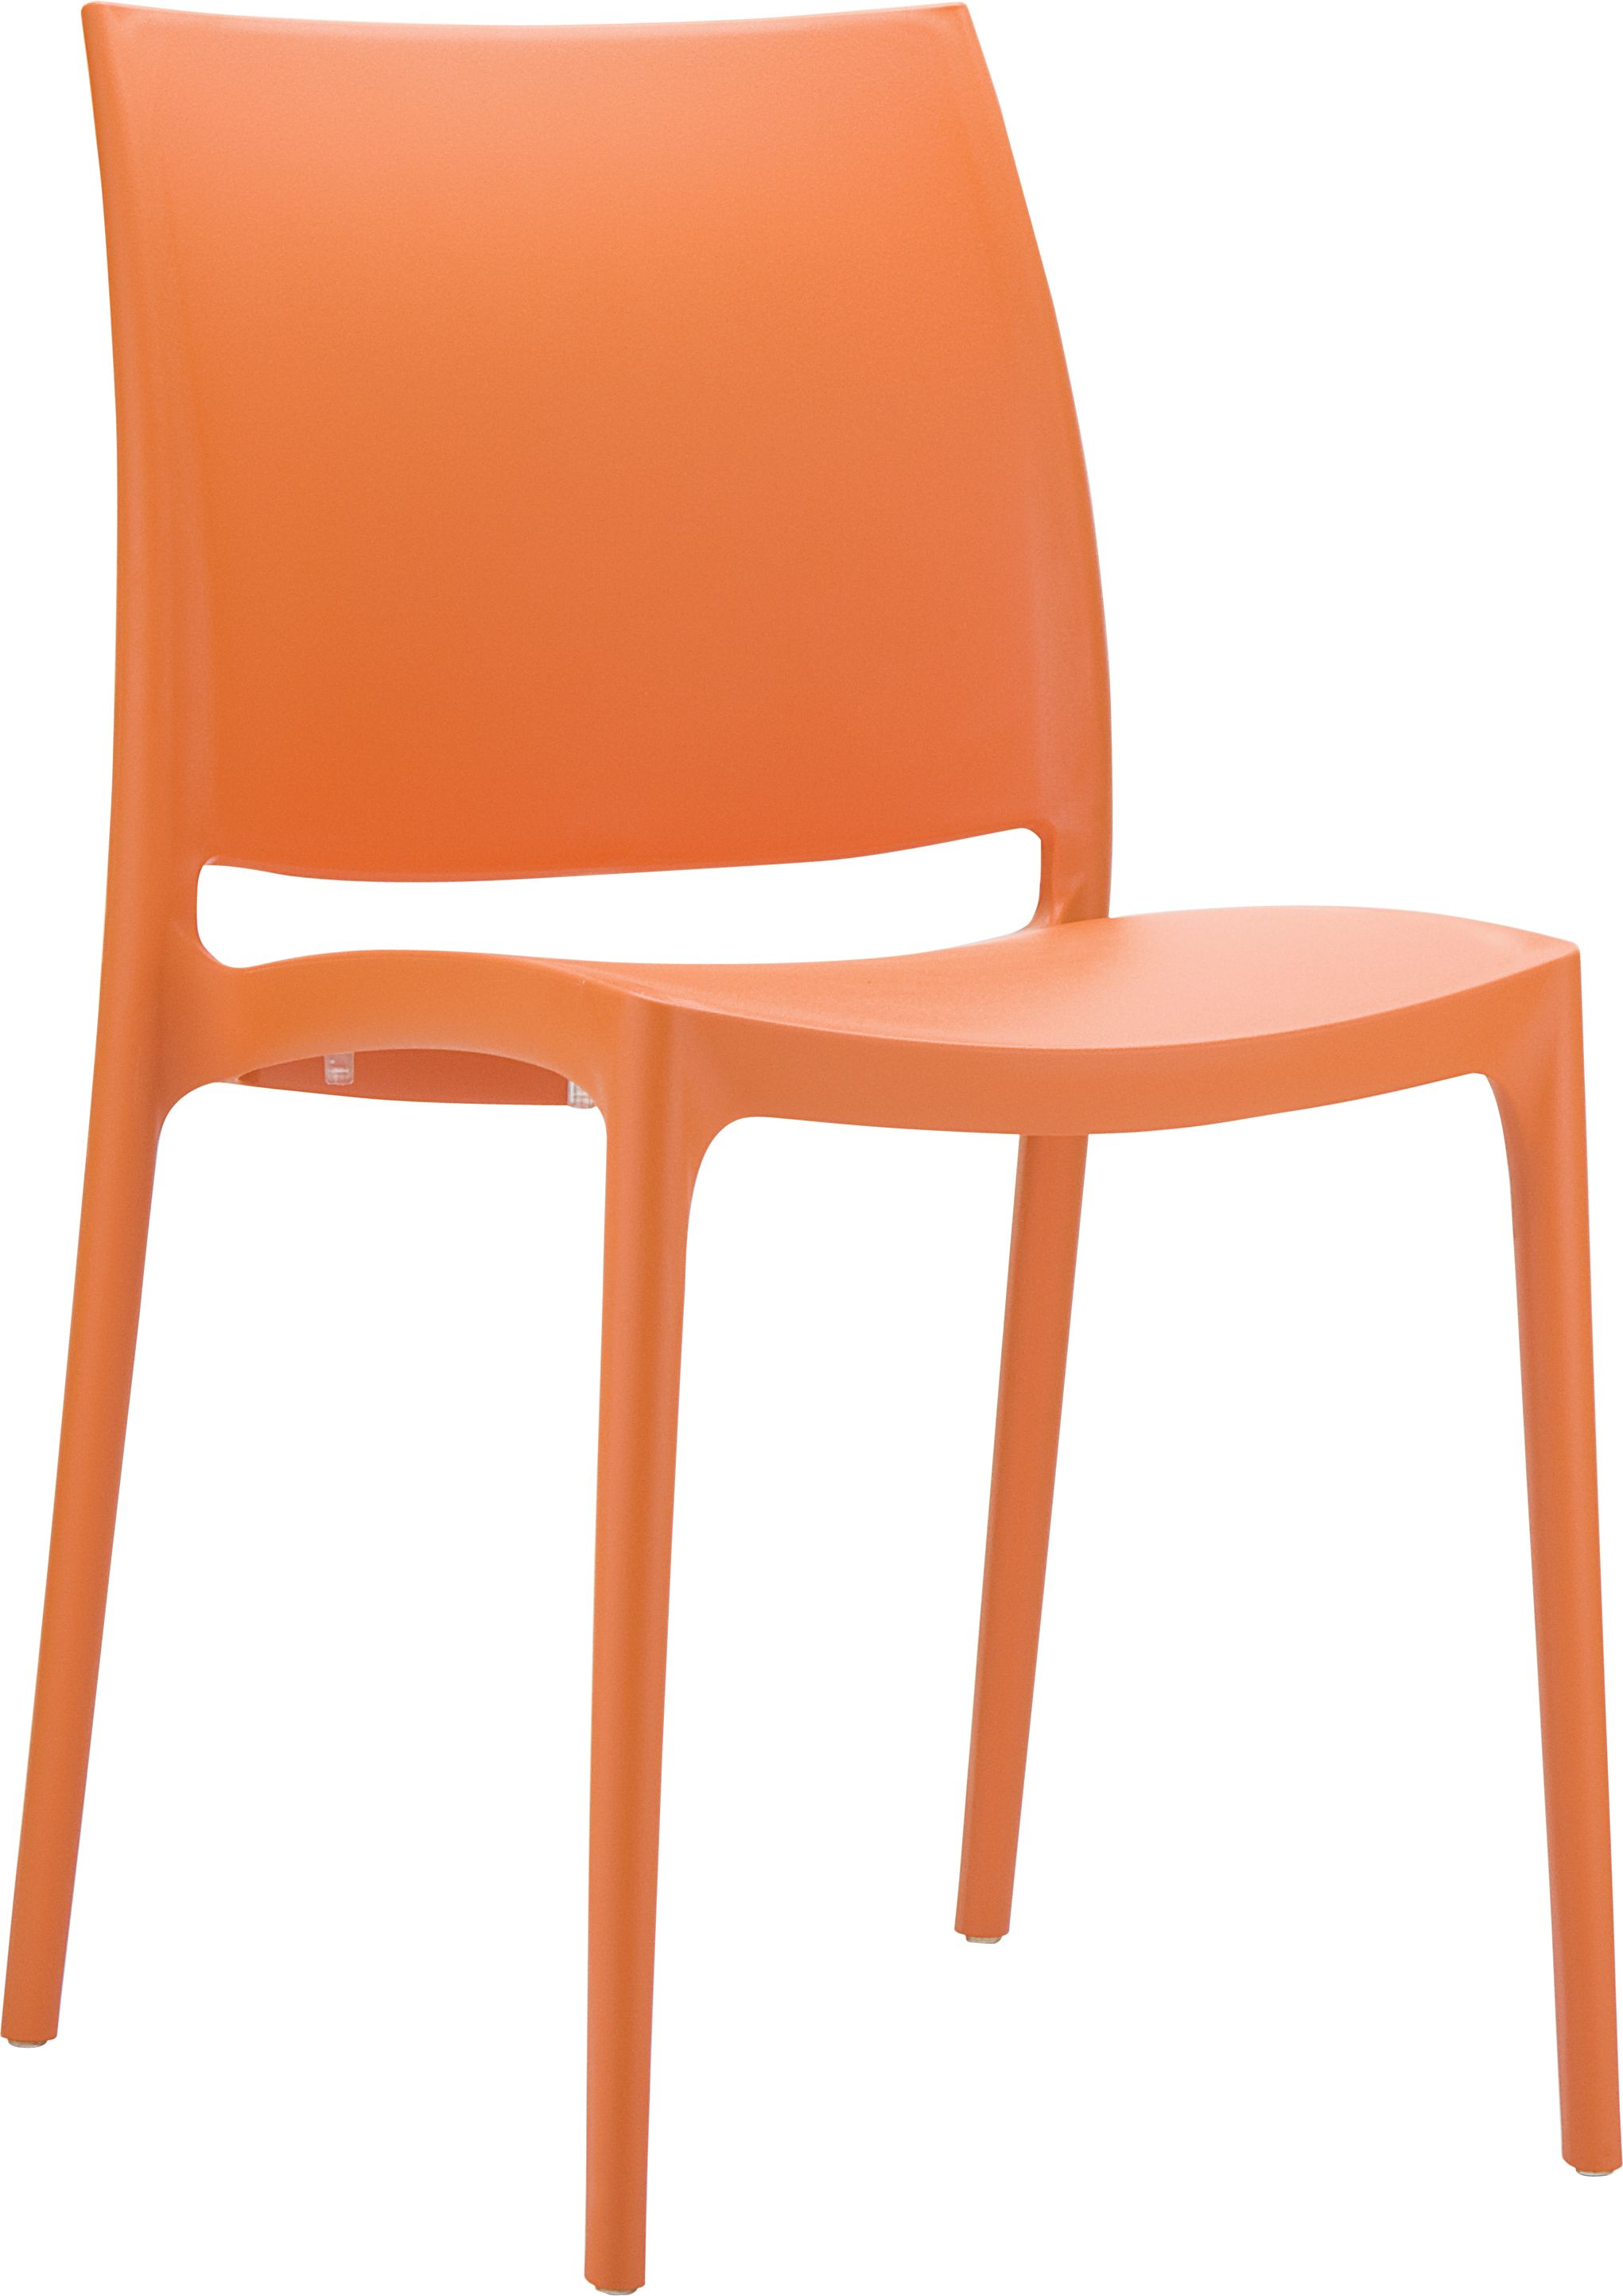 martinique orange side chair saes pinterest dining chairs